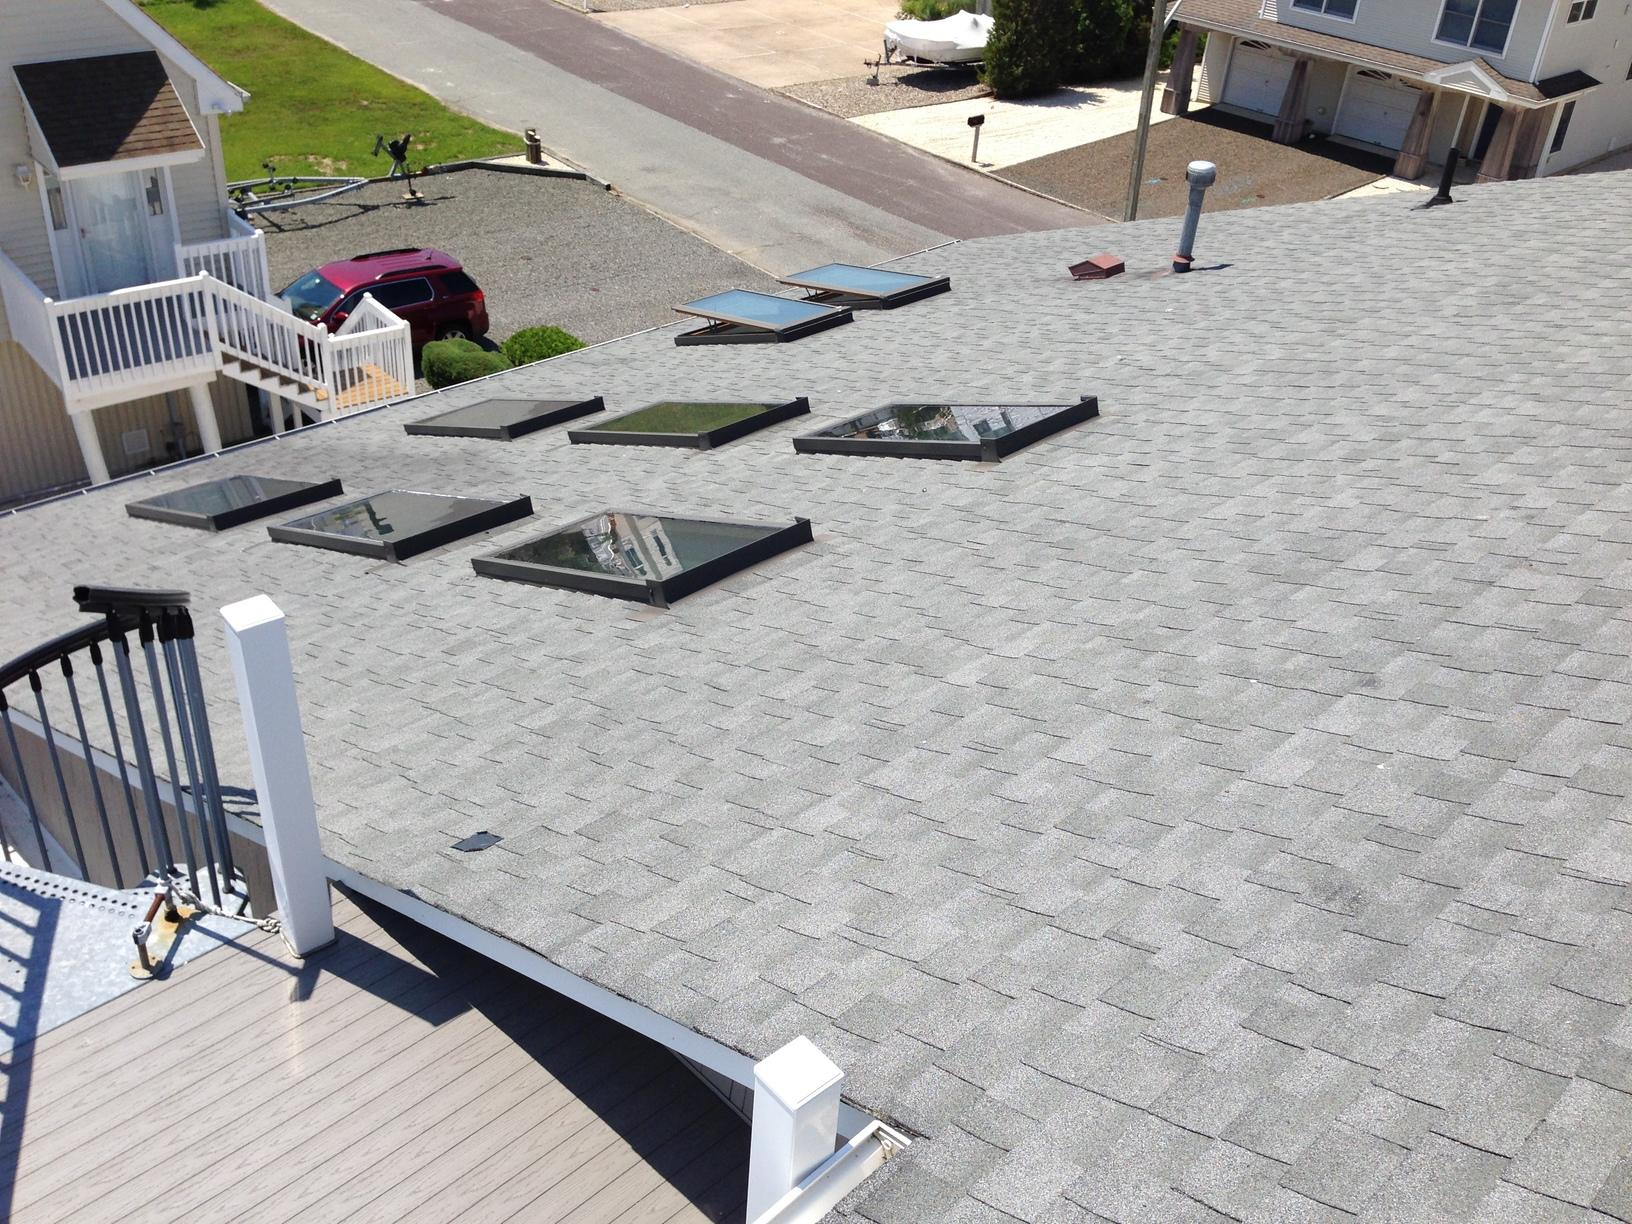 Replacing Storm-Damaged Asphalt Shingles with Several Skylights in NJ